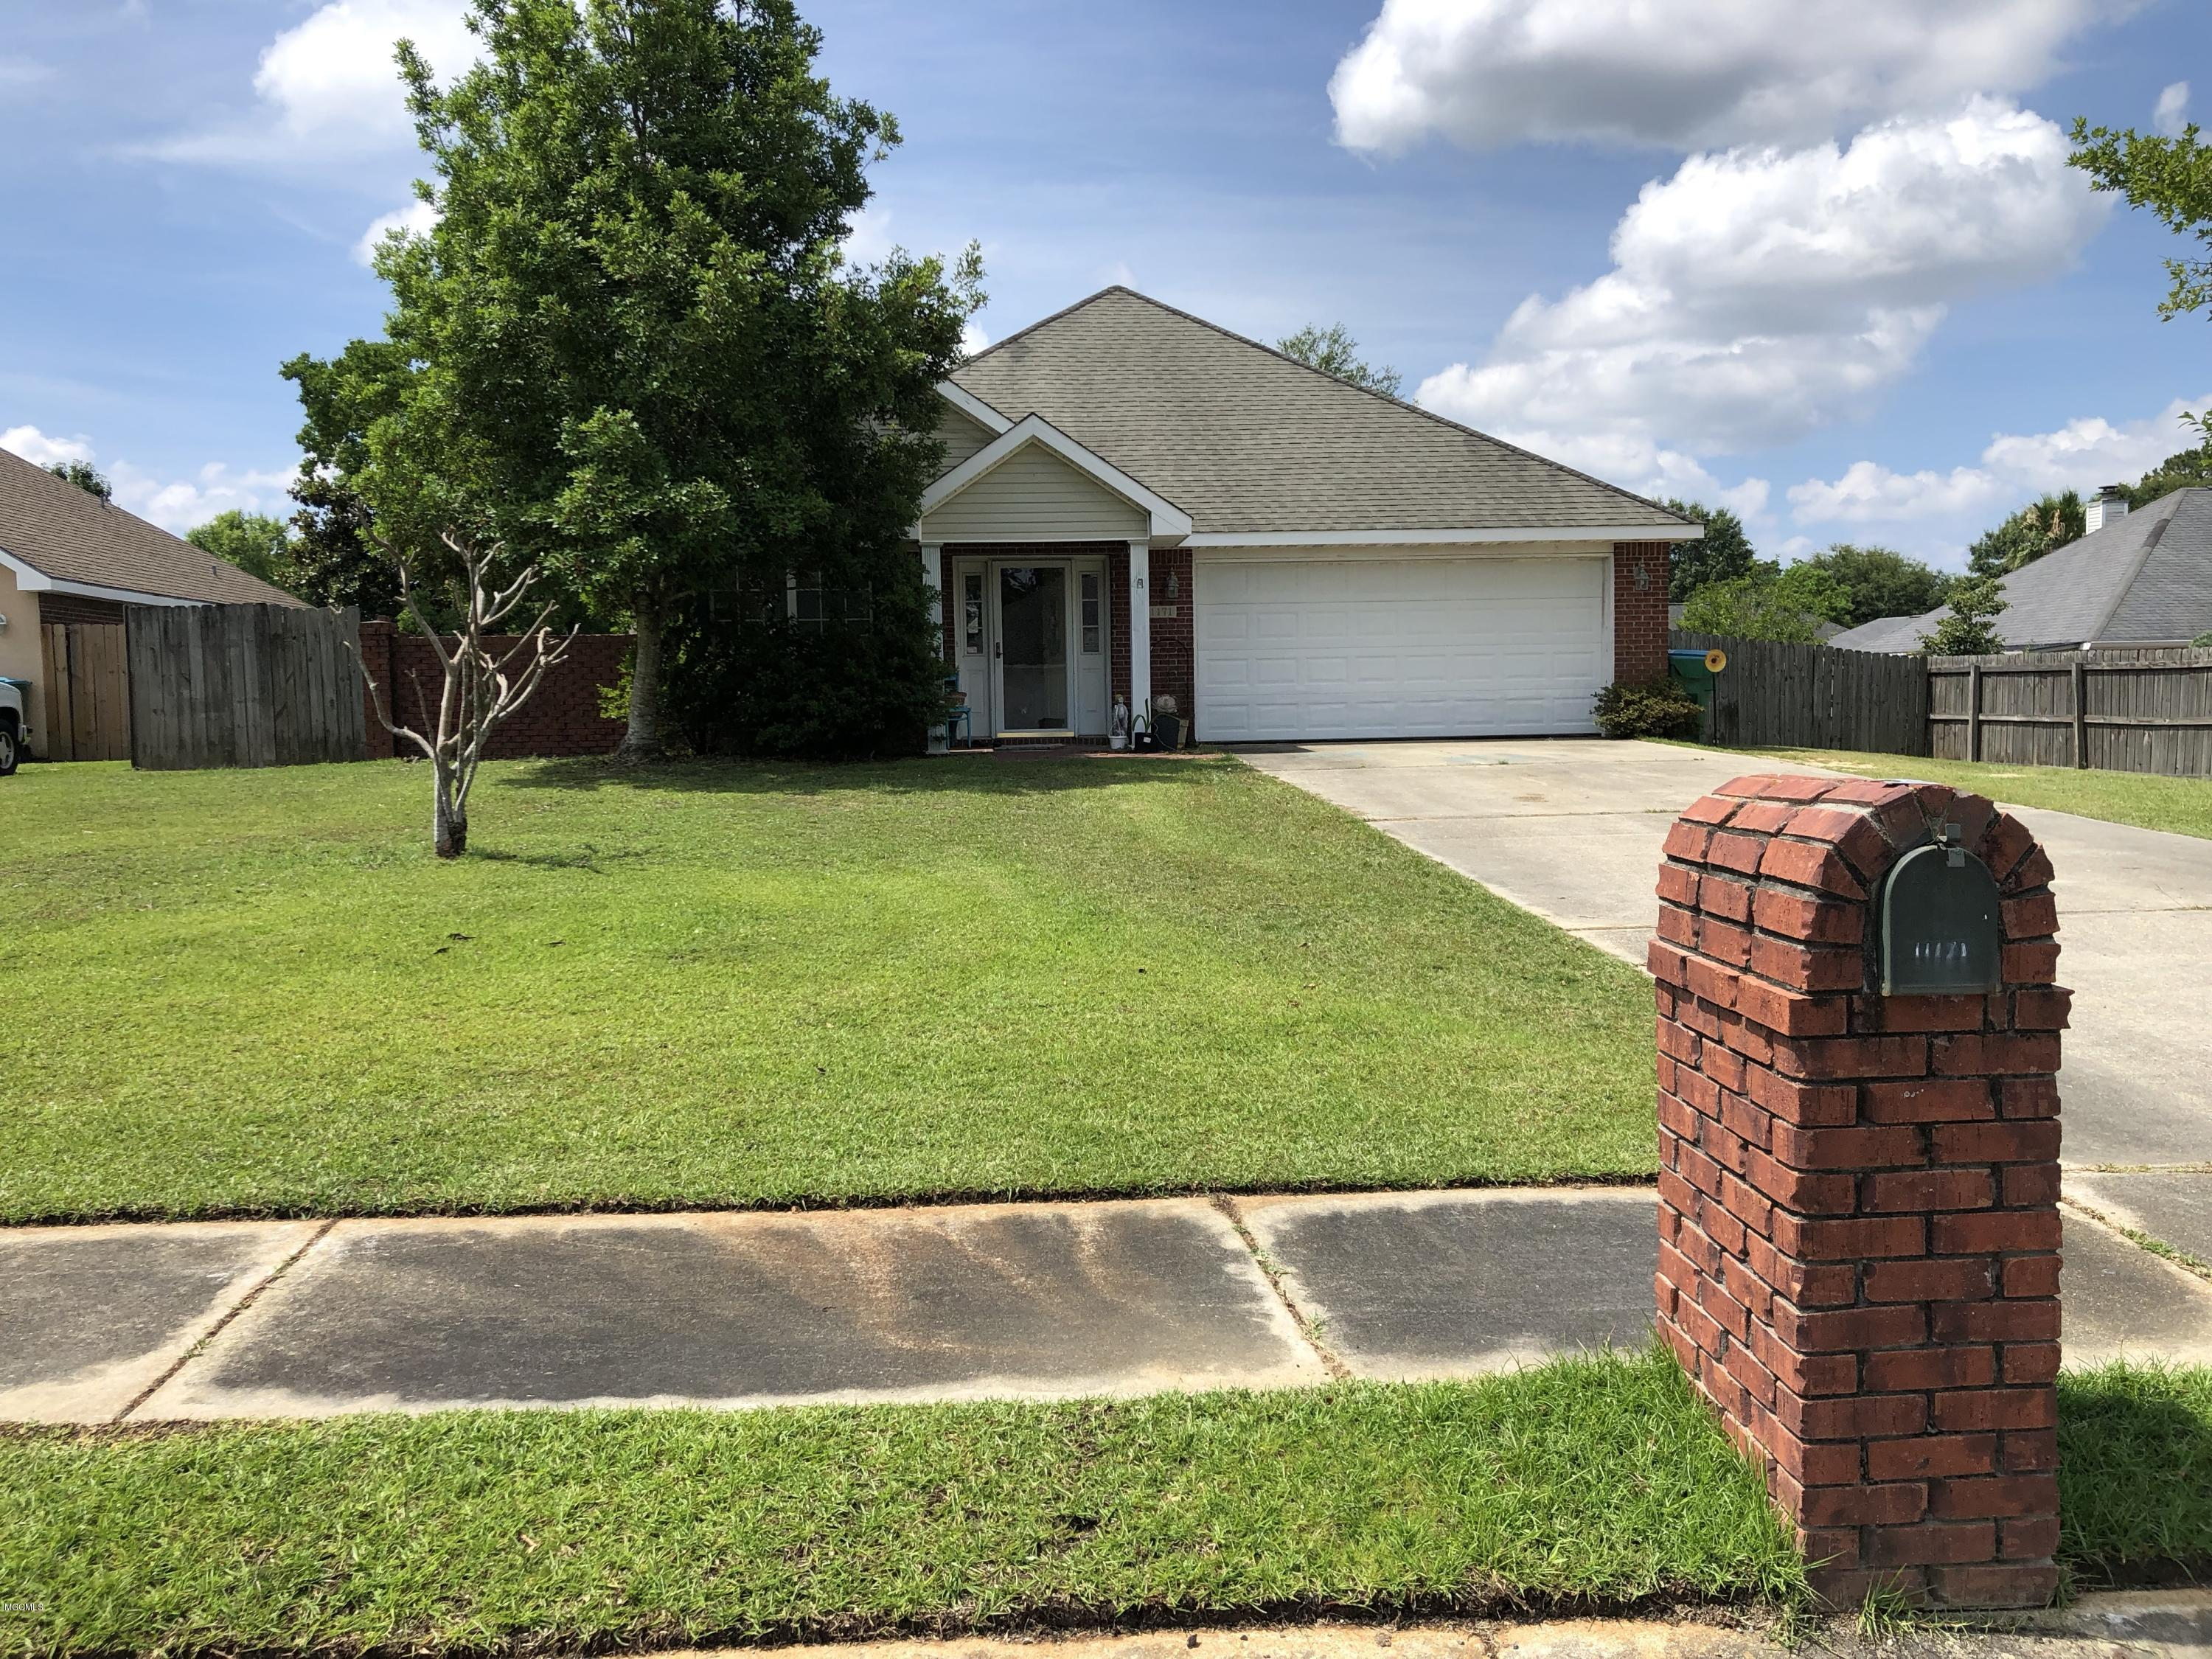 11171 Hidden Creek Dr Gulfport MS 39503